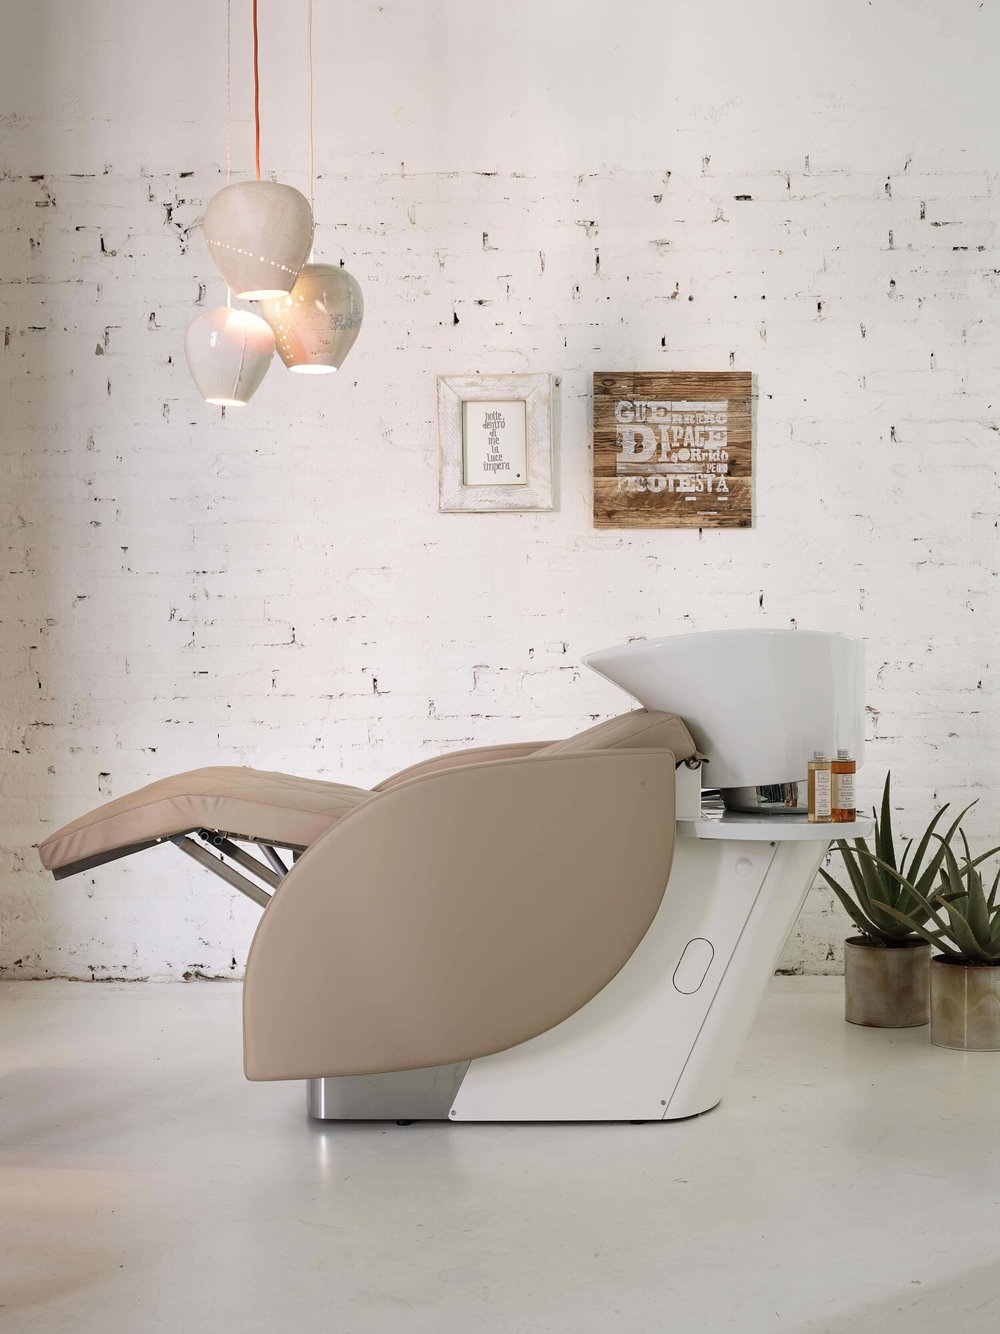 Echos-Coiffure-mobilier-Beauty-Star-Bac-a-shampooing-Almond.jpg